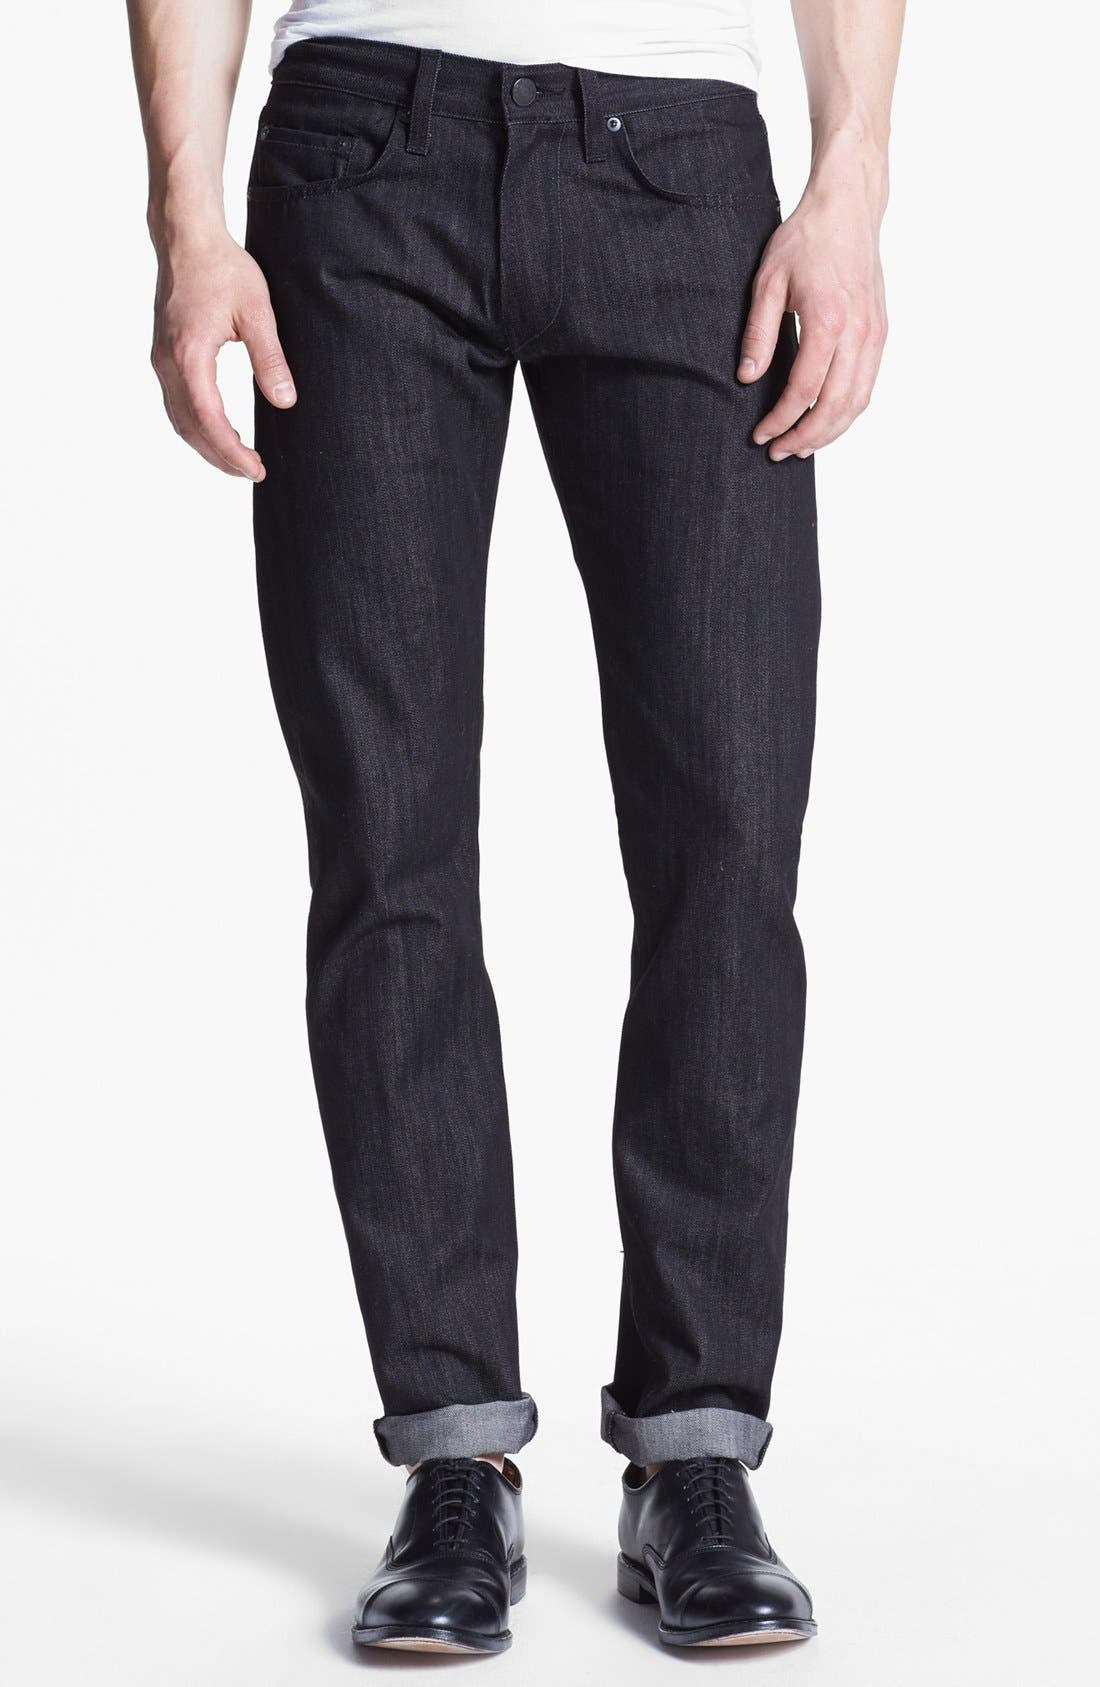 Alternate Image 1 Selected - J Brand 'Tyler' Slim Fit Jeans (Black Raw)